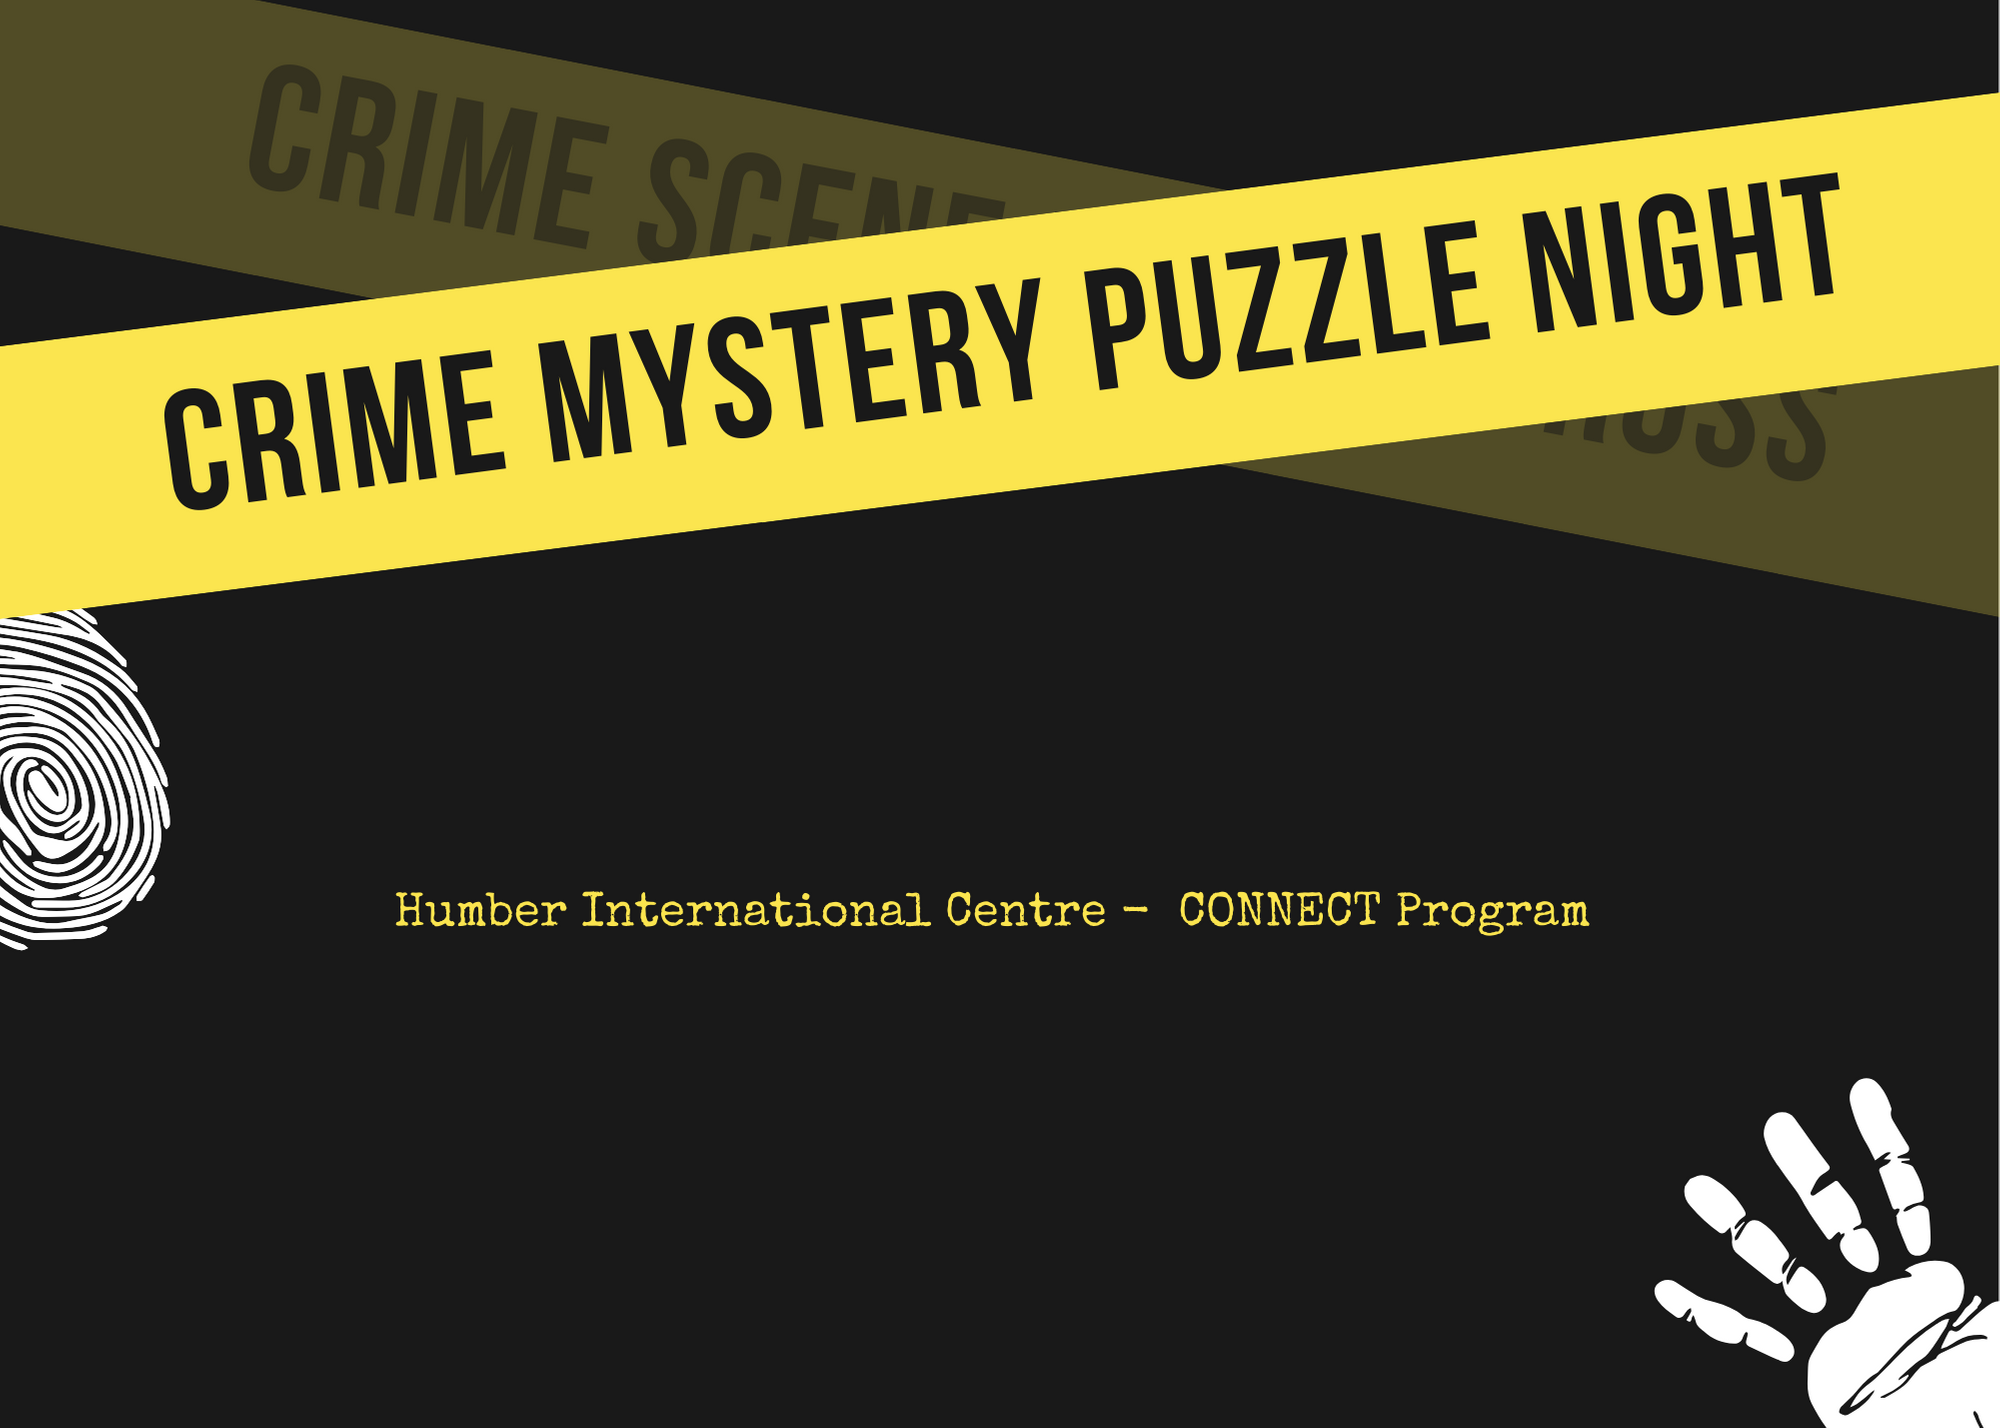 CONNECT - Mystery Puzzle Solving Night (Lakeshore Campus)